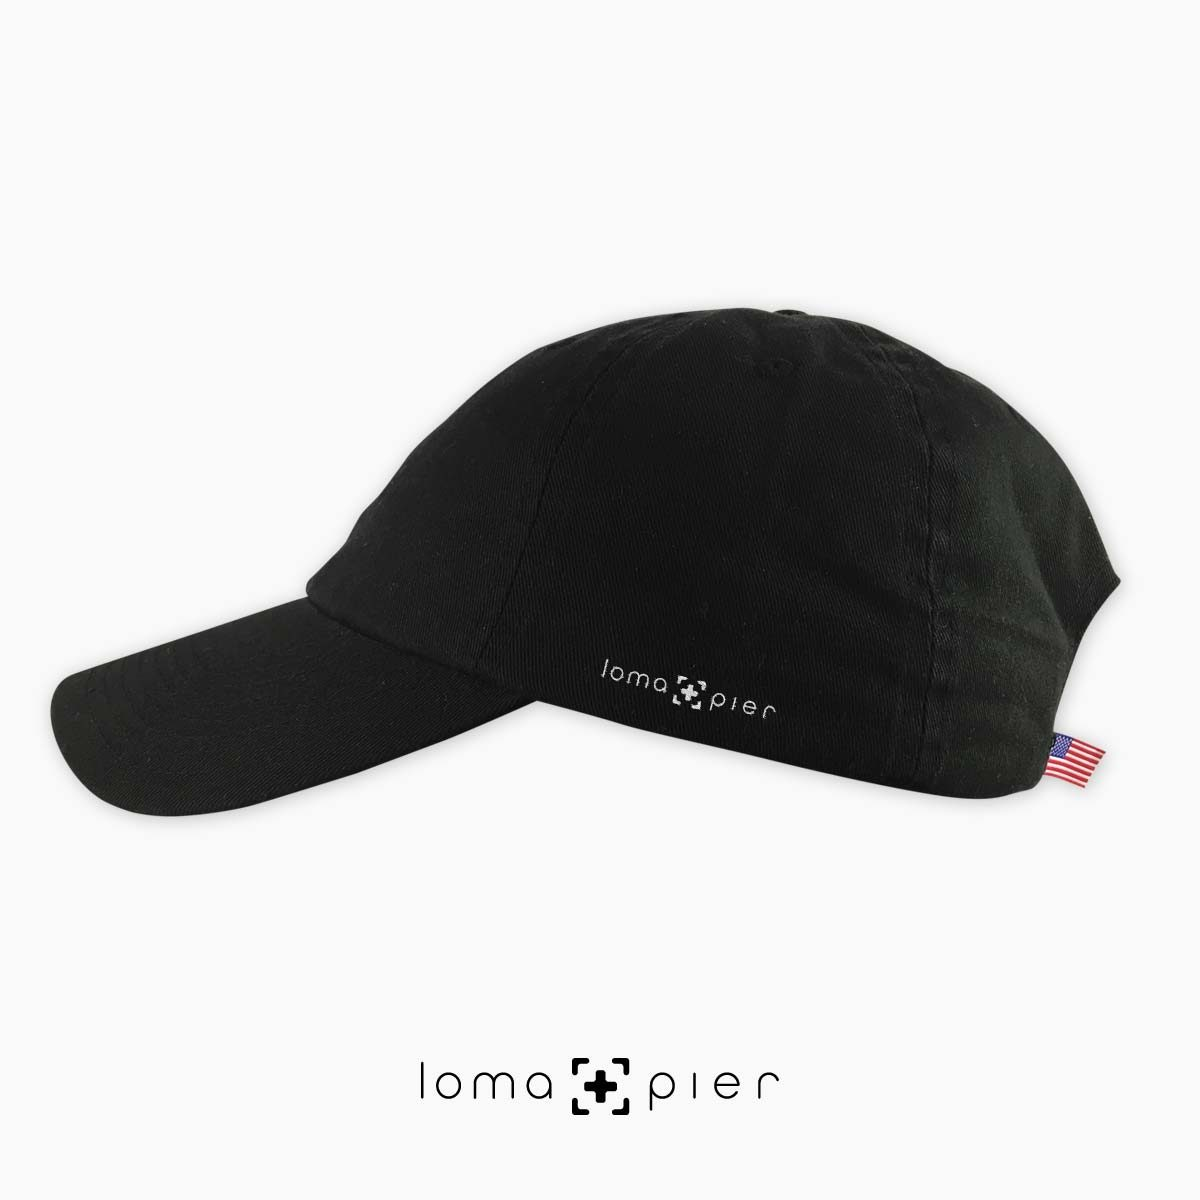 8b4d64b105308 MOON icon embroidered on a black dad hat by loma+pier hat store made in ·  black unstructured dad hat with loma+pier logo on left side by loma+pier